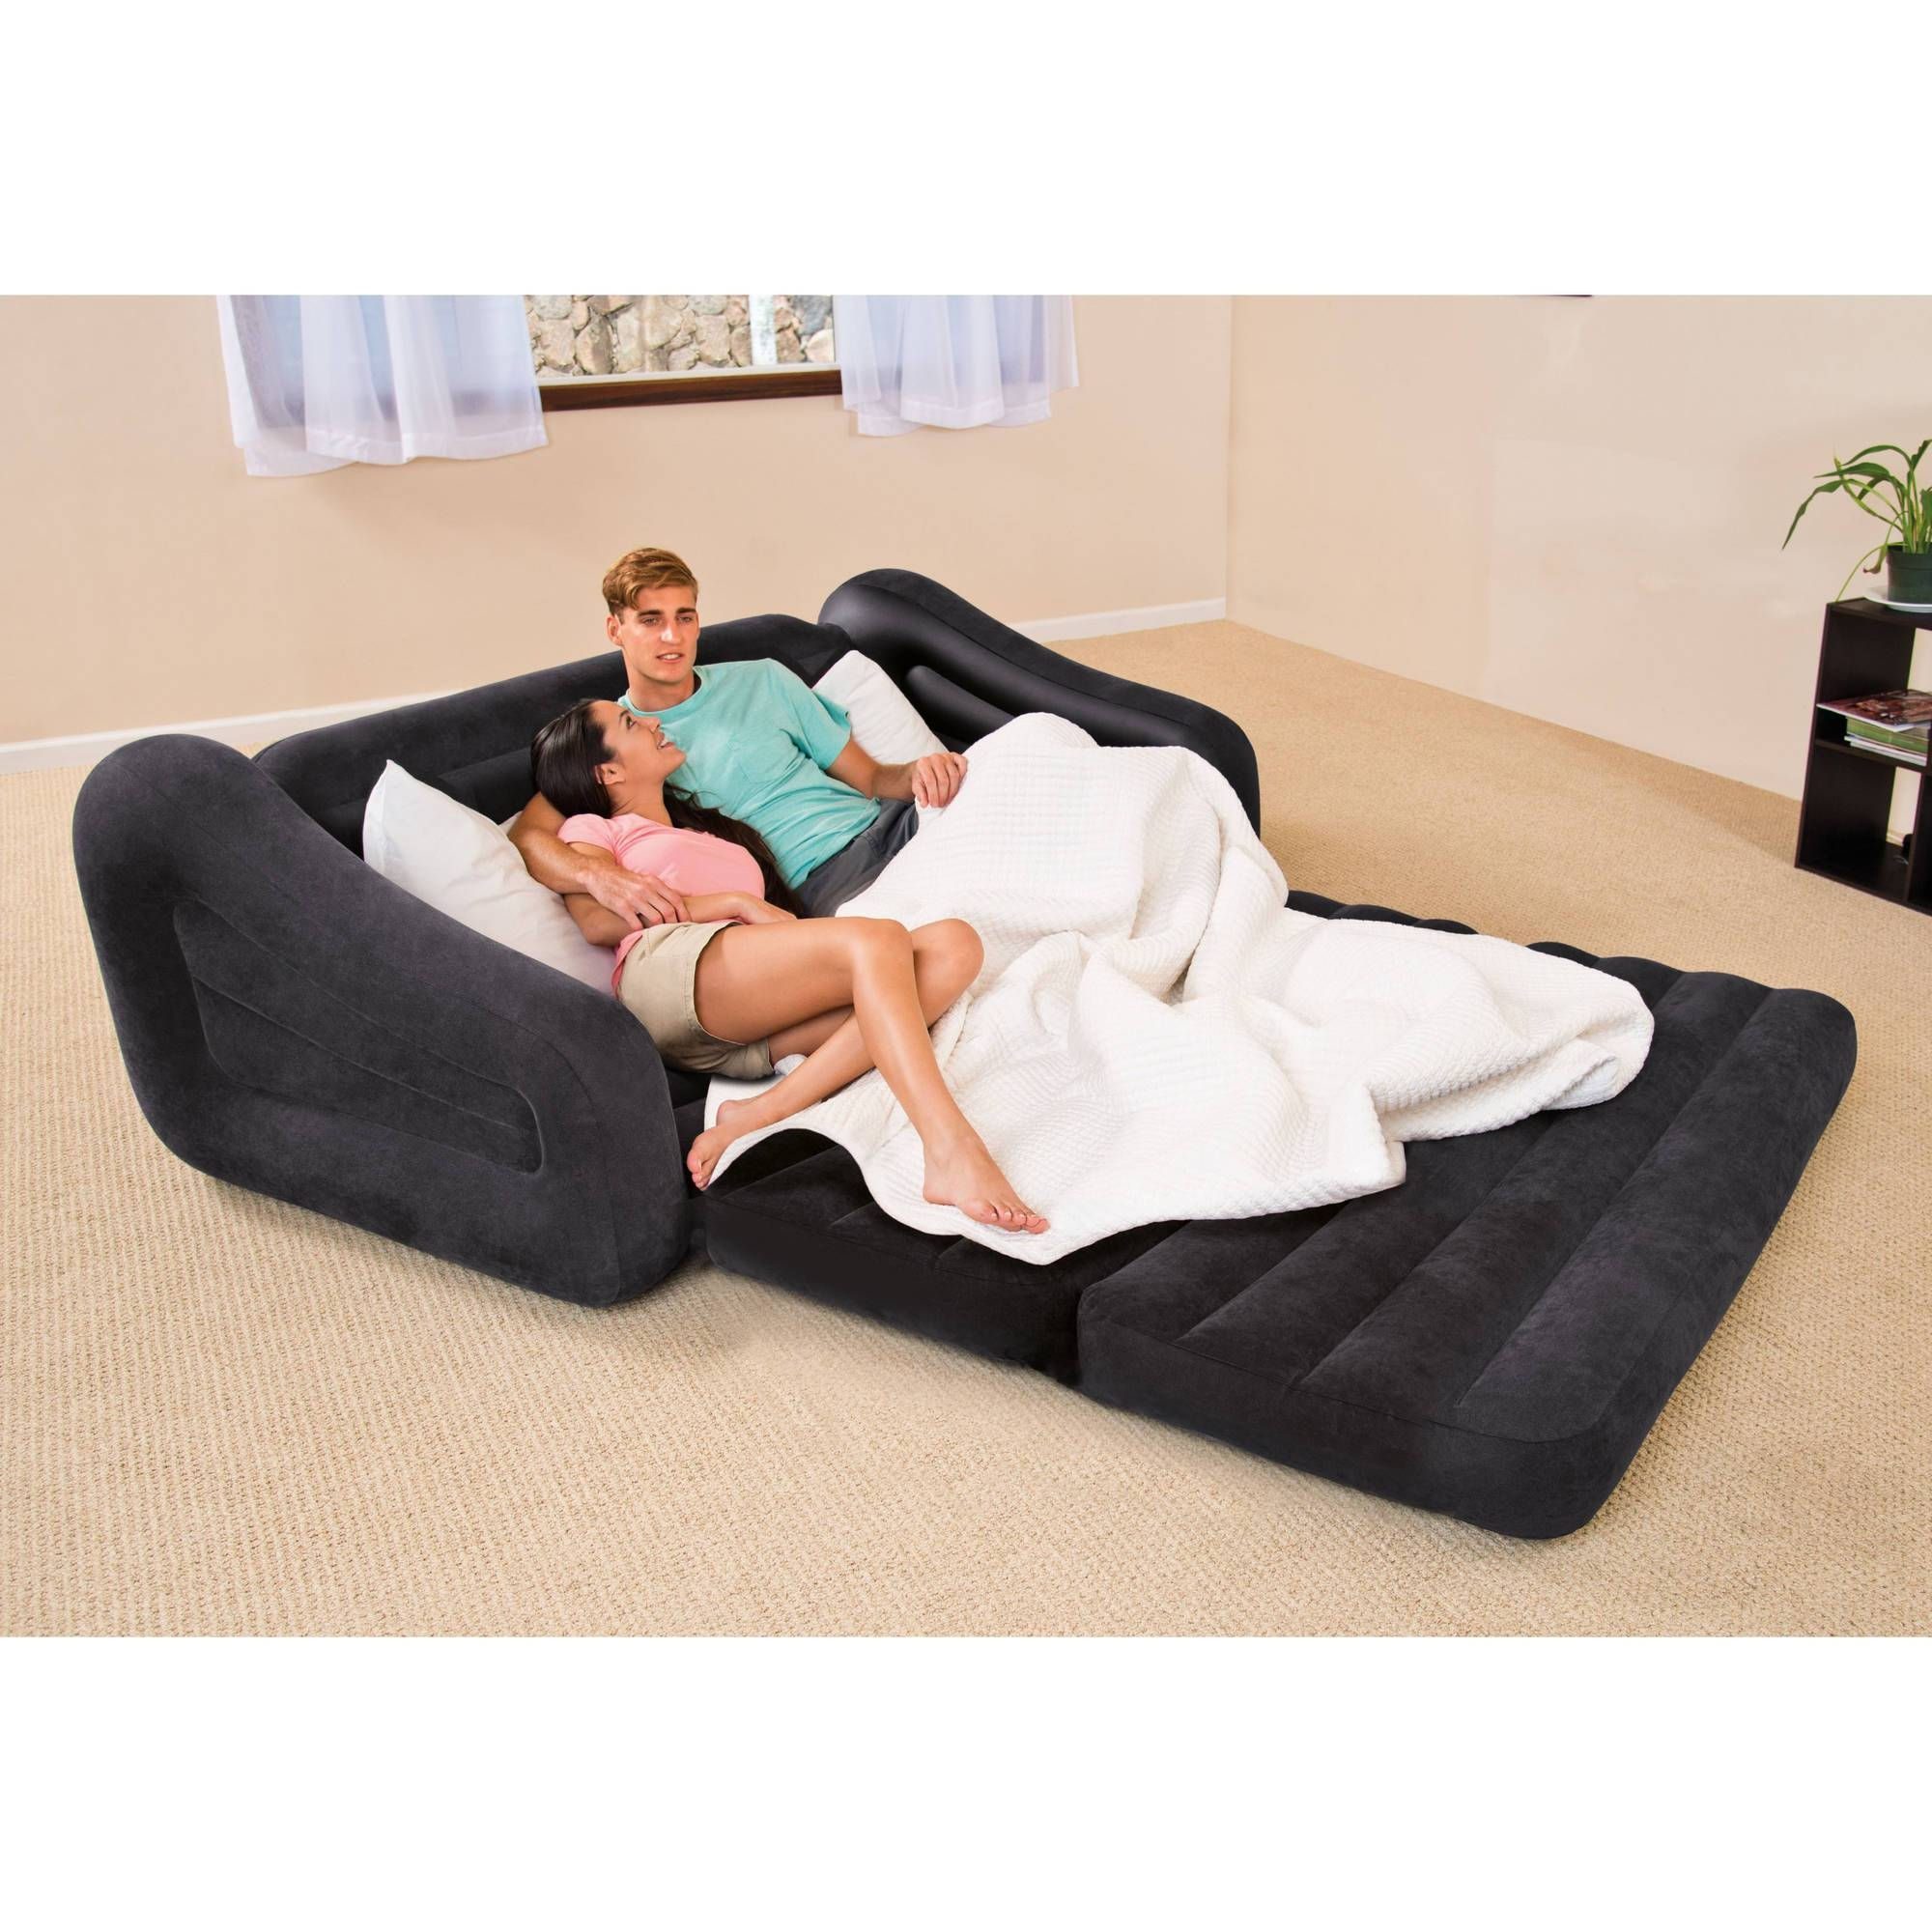 Intex Queen Inflatable Pull-Out Sofa Bed - Walmart with regard to Sofas Mattress (Image 3 of 15)